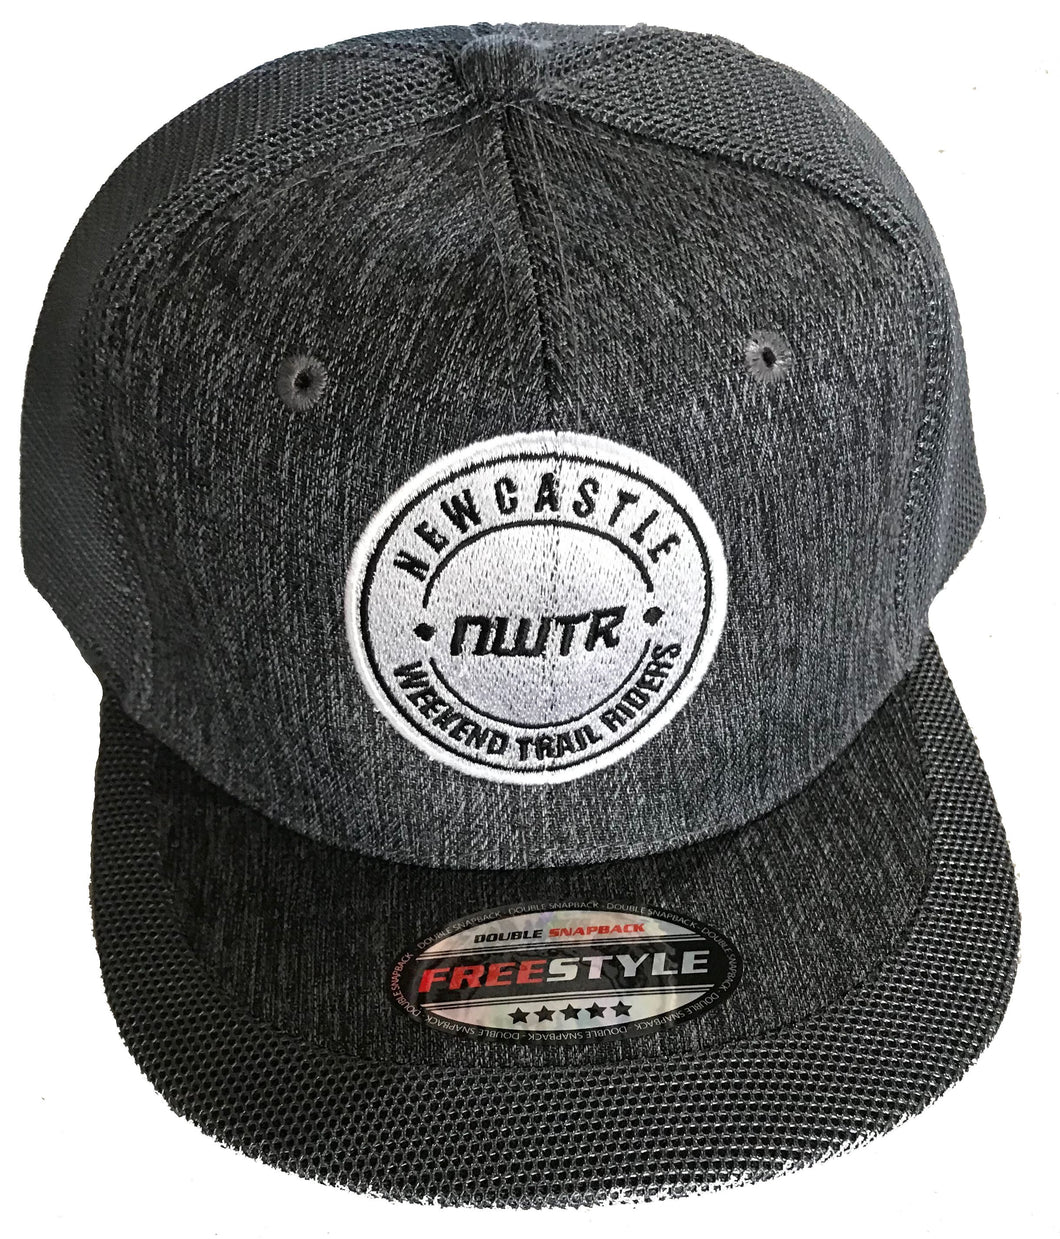 NWTR - Newcastle Members- Snap Back Caps